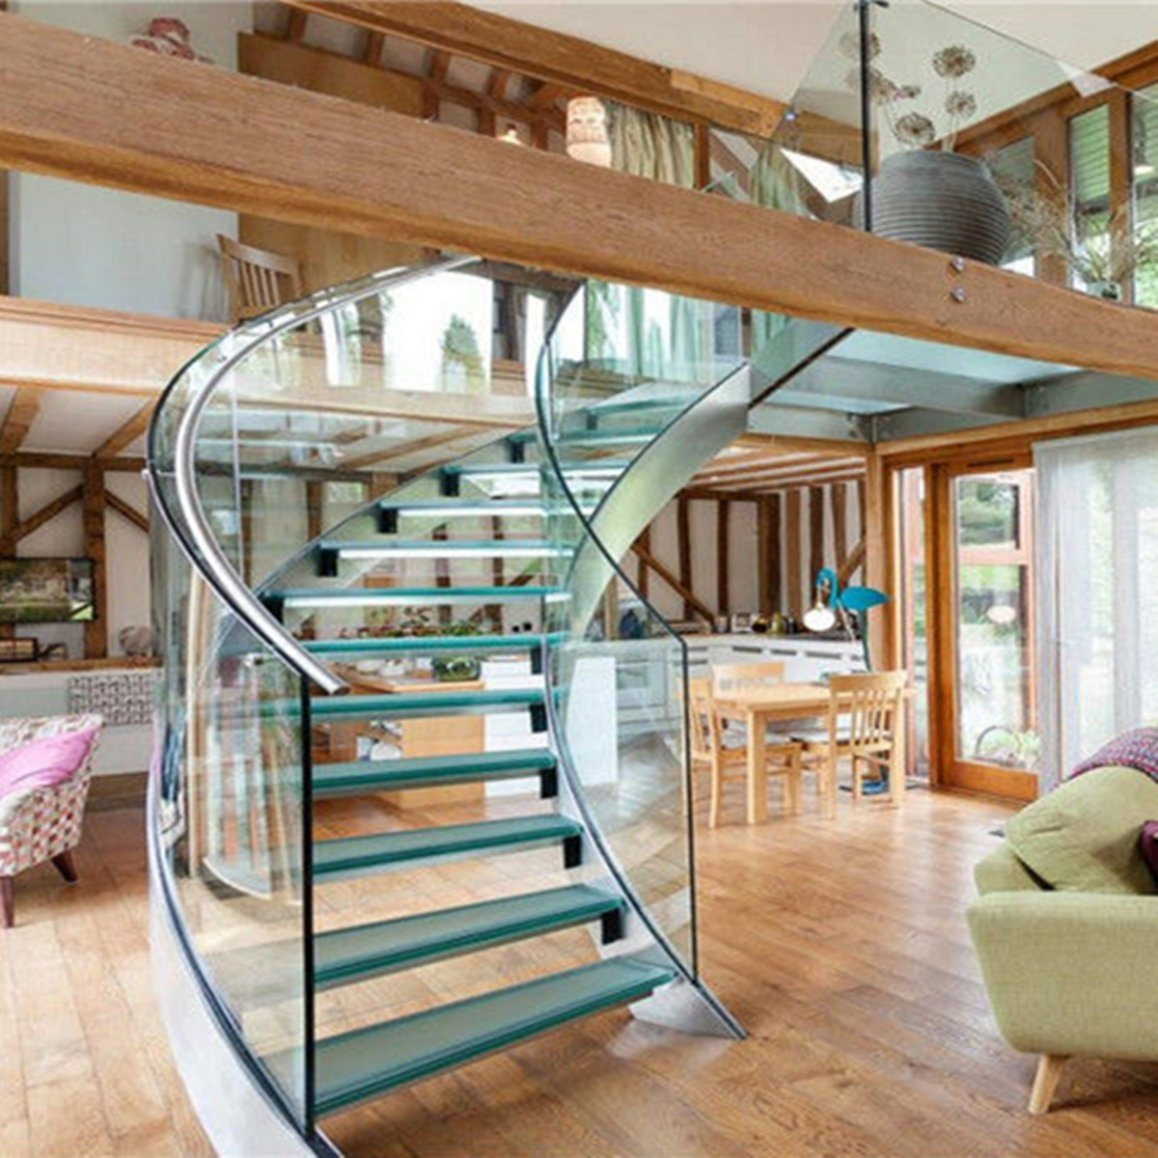 Best Price Curved Glass Staircases With Bent Glass Railing Glass   Spiral Staircase With Glass Railing   Metal   Residential   In India Staircase   Contemporary Glass   Thin Glass